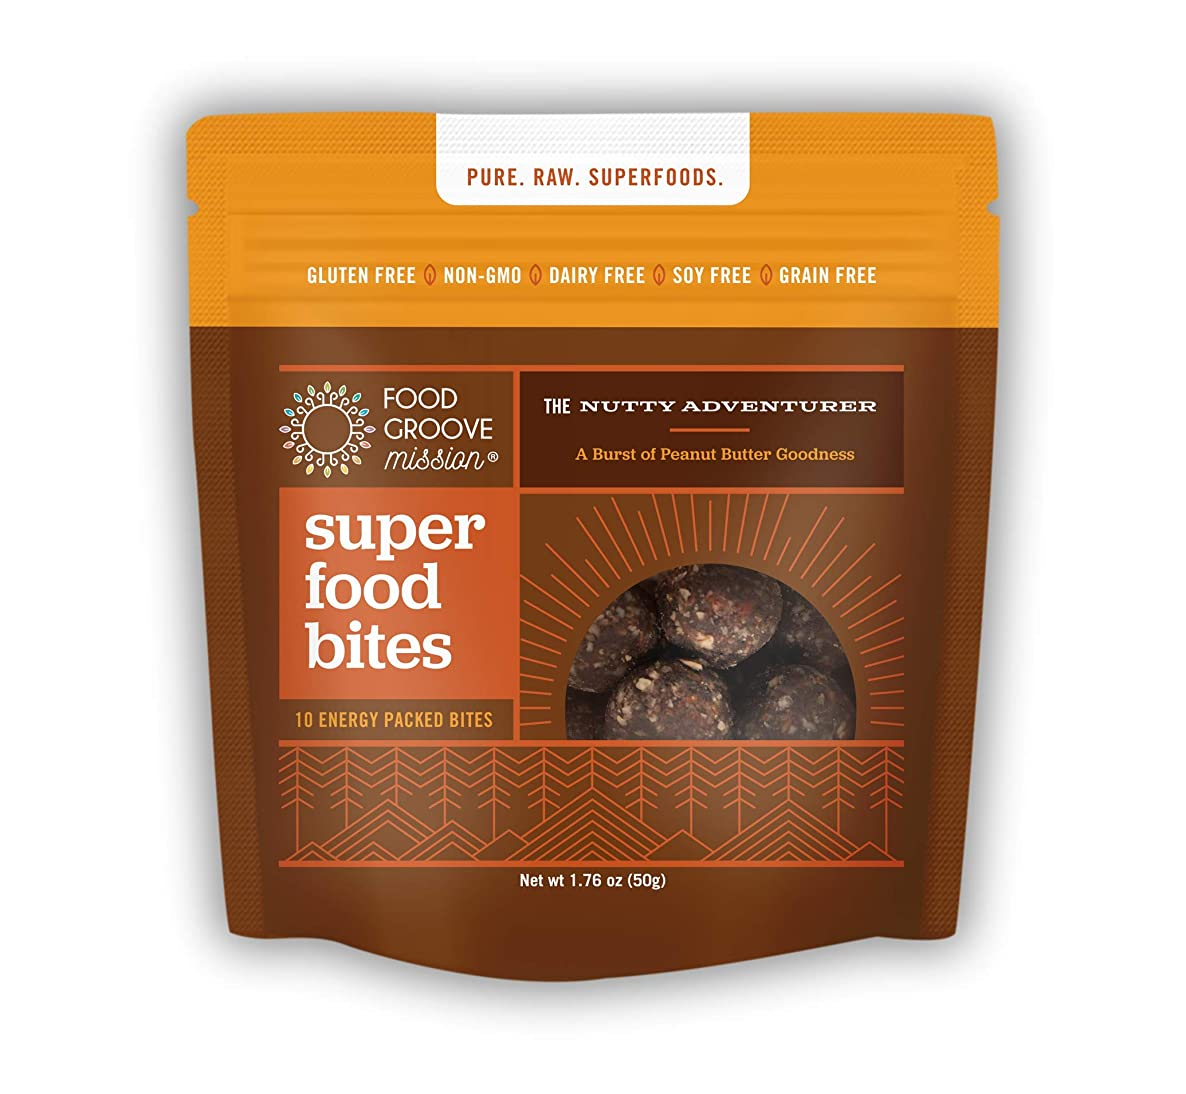 The Nutty Adventurer Peanut Butter Superfood Bites (Box of 10 pouches) - Non-GMO, Gluten Free, Dairy Free, Soy Free, Grain Free